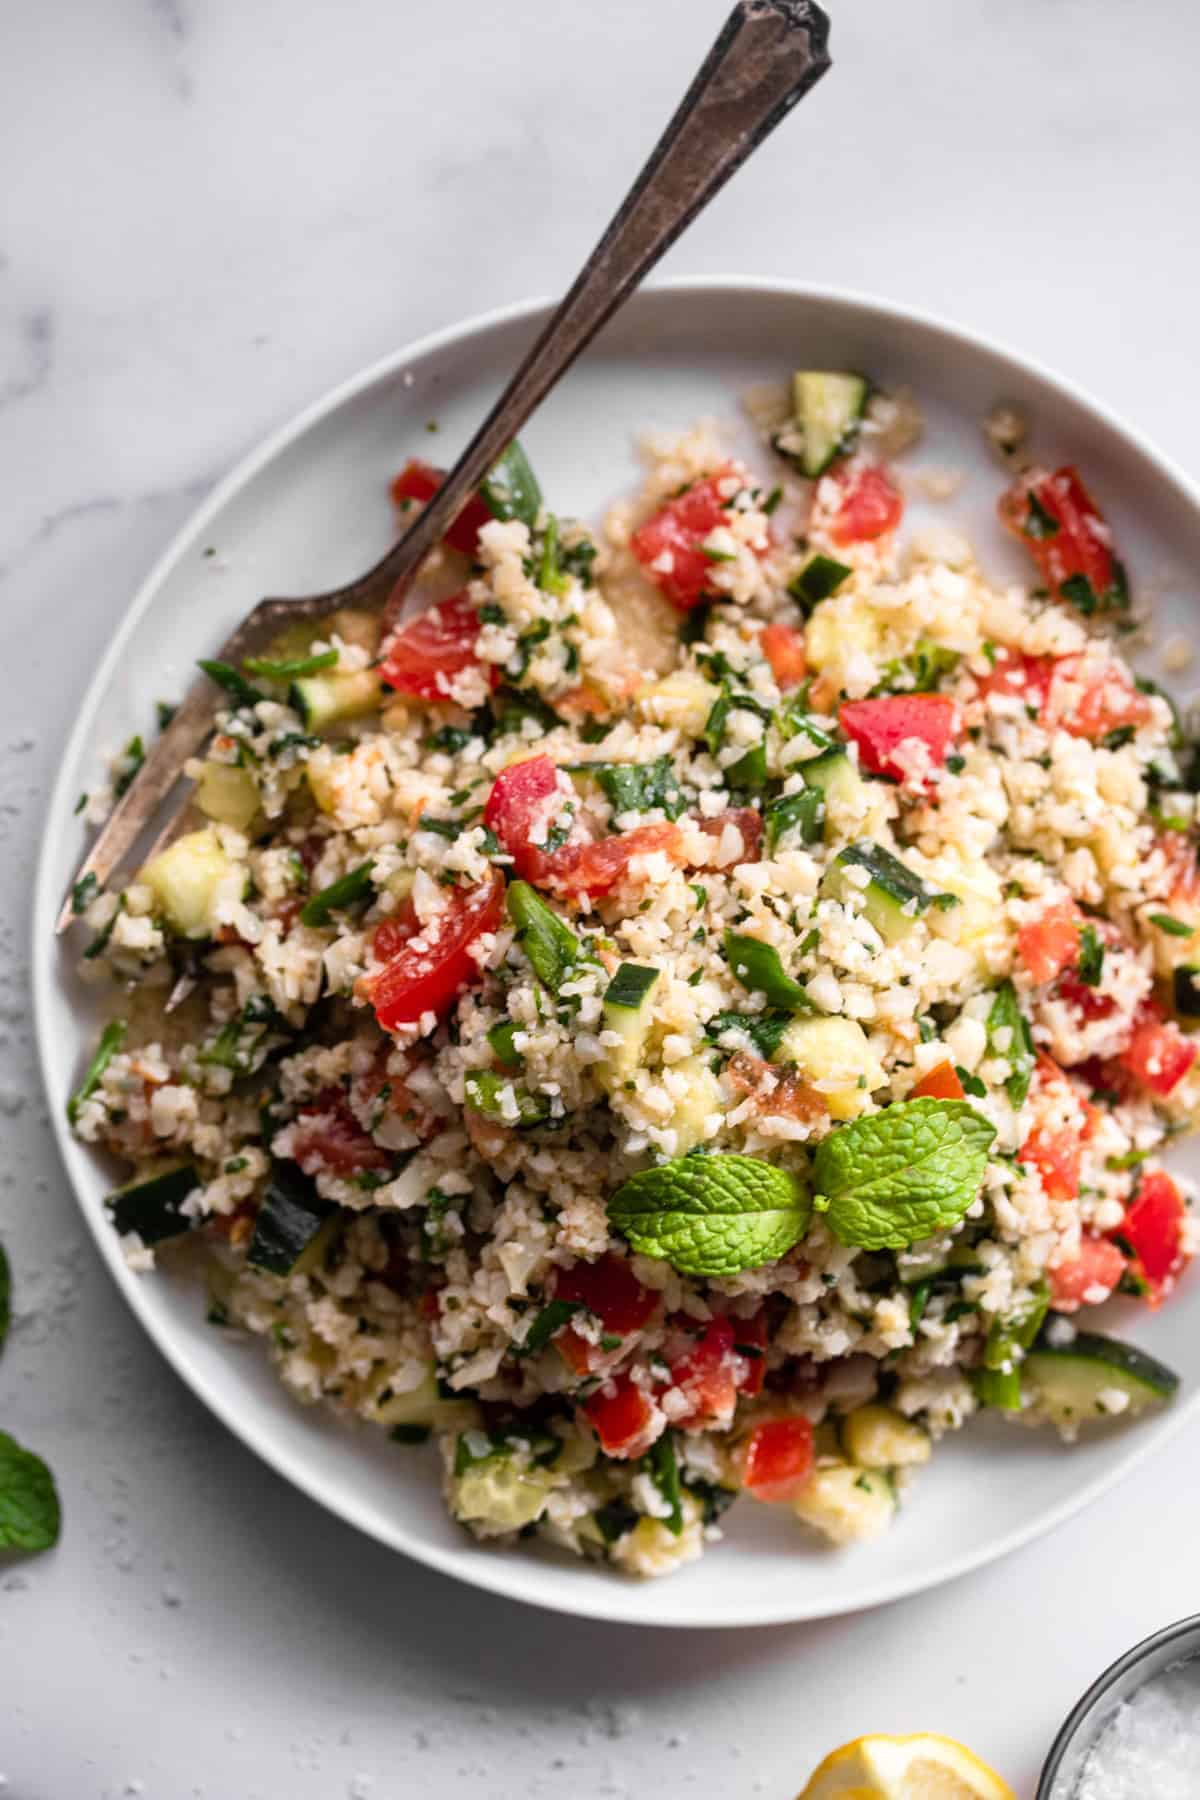 Tabbouleh Cauliflower in a serving plate with a spoon